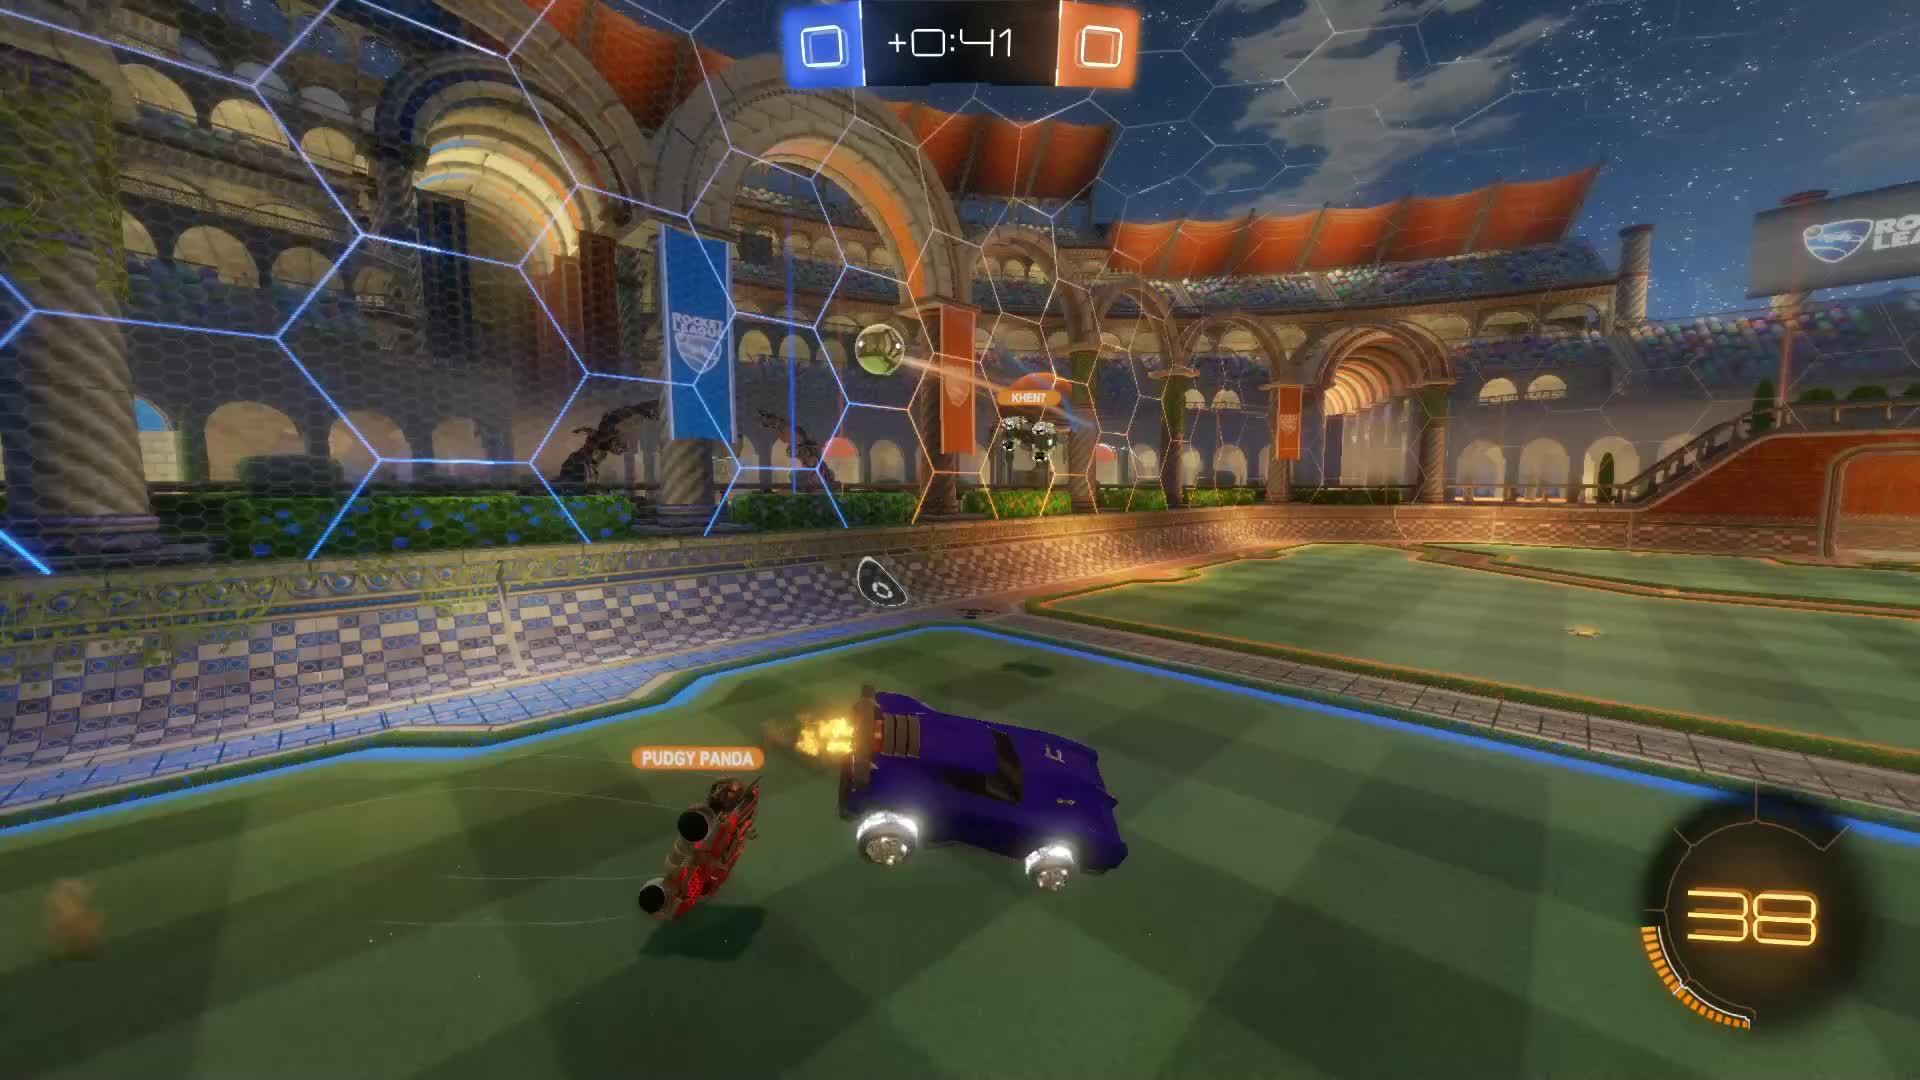 Assist, Gif Your Game, GifYourGame, Rocket League, RocketLeague, rye., Assist 1: rye. GIFs